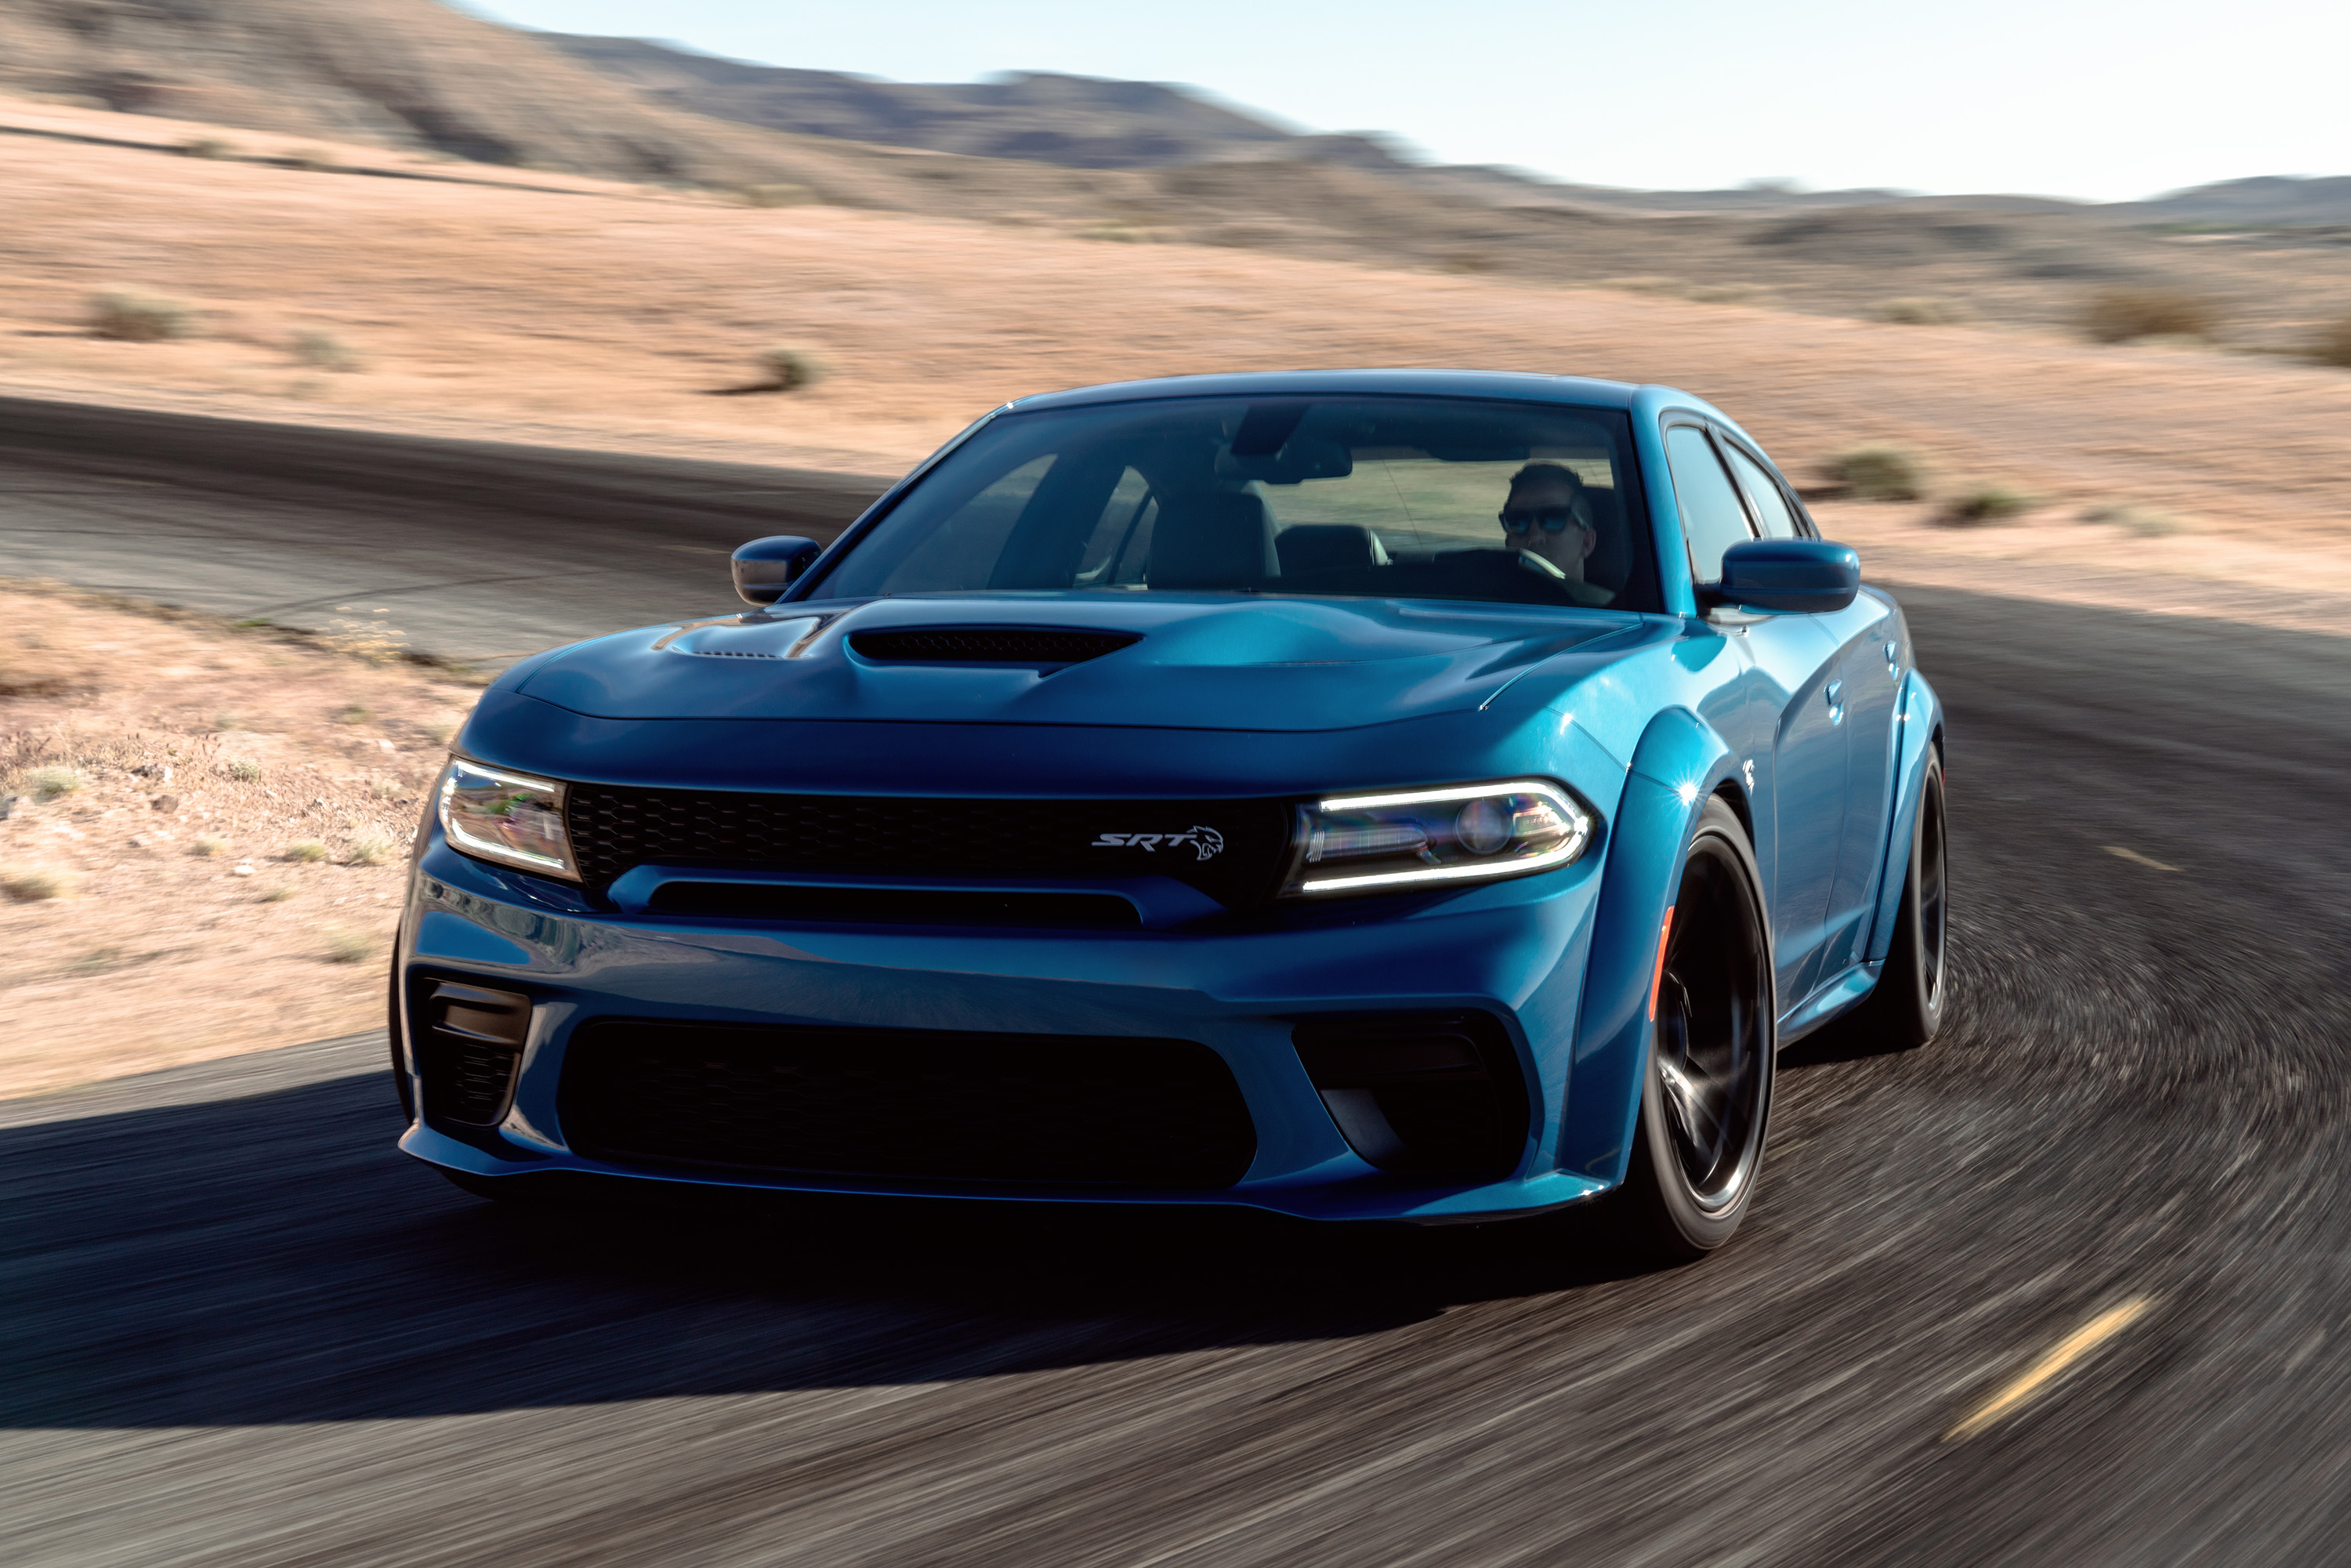 2020 Dodge Charger Hellcat and R/T Scat Pack Gain Wide Body Stance